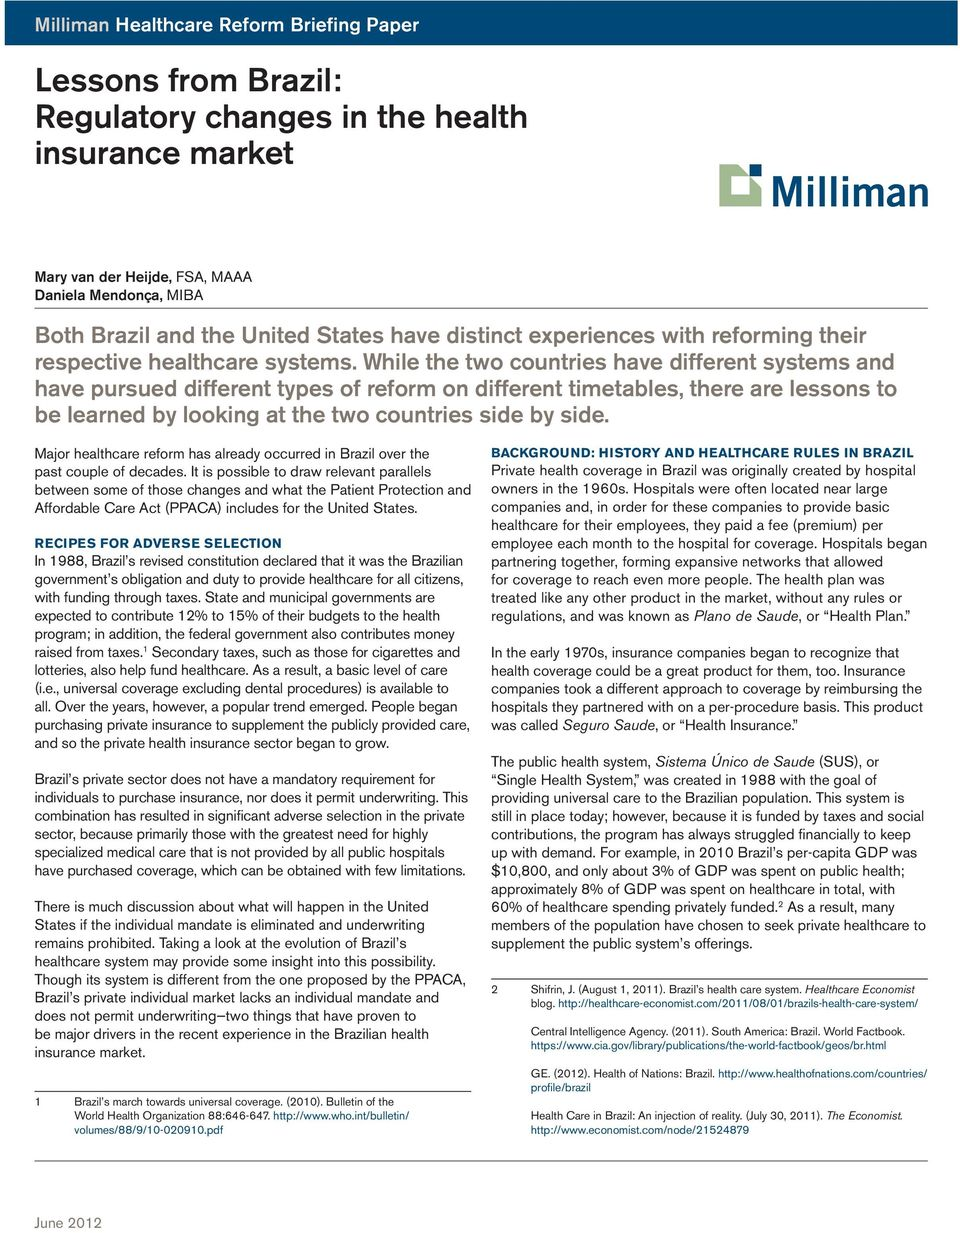 Lessons From Brazil Regulatory Changes In The Health Insurance